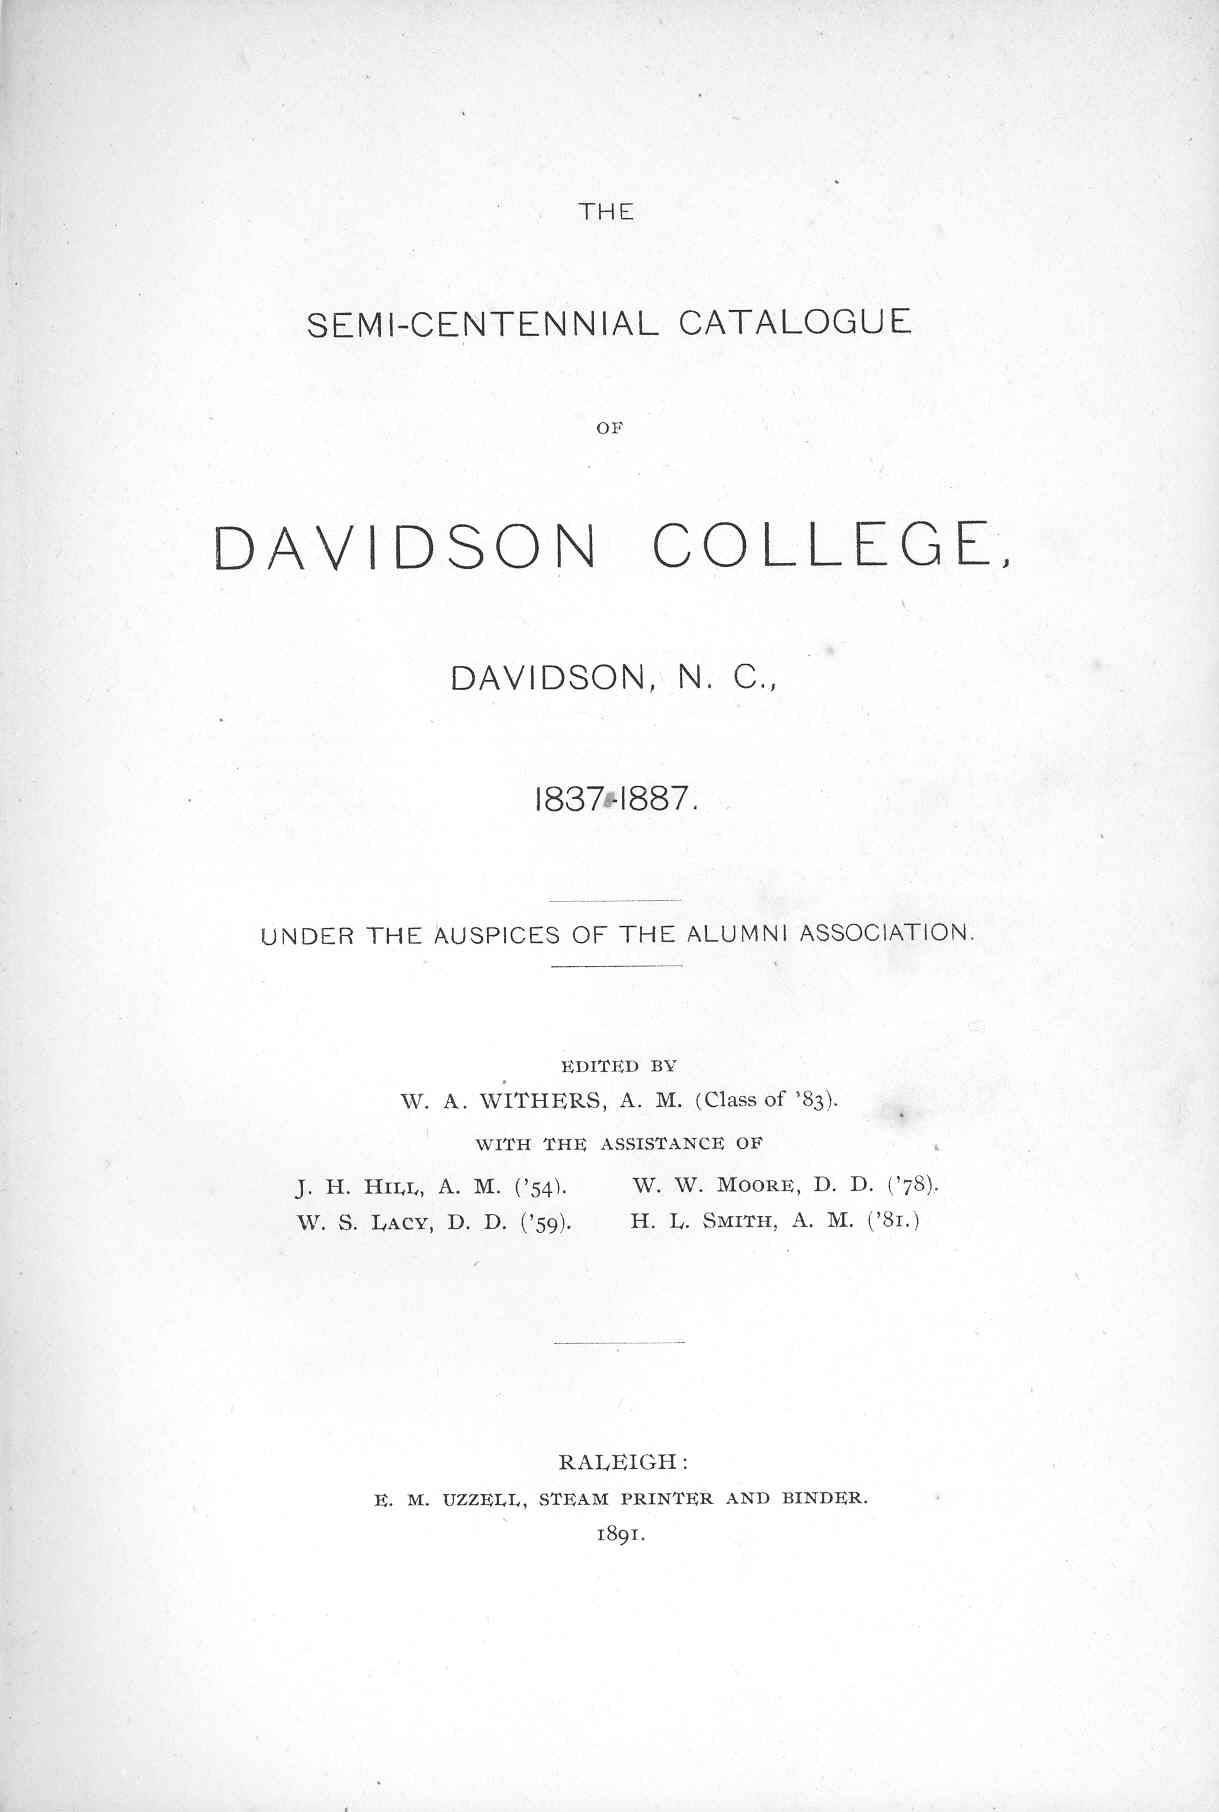 Title page of Semi-centennial catalogue of Davidson College